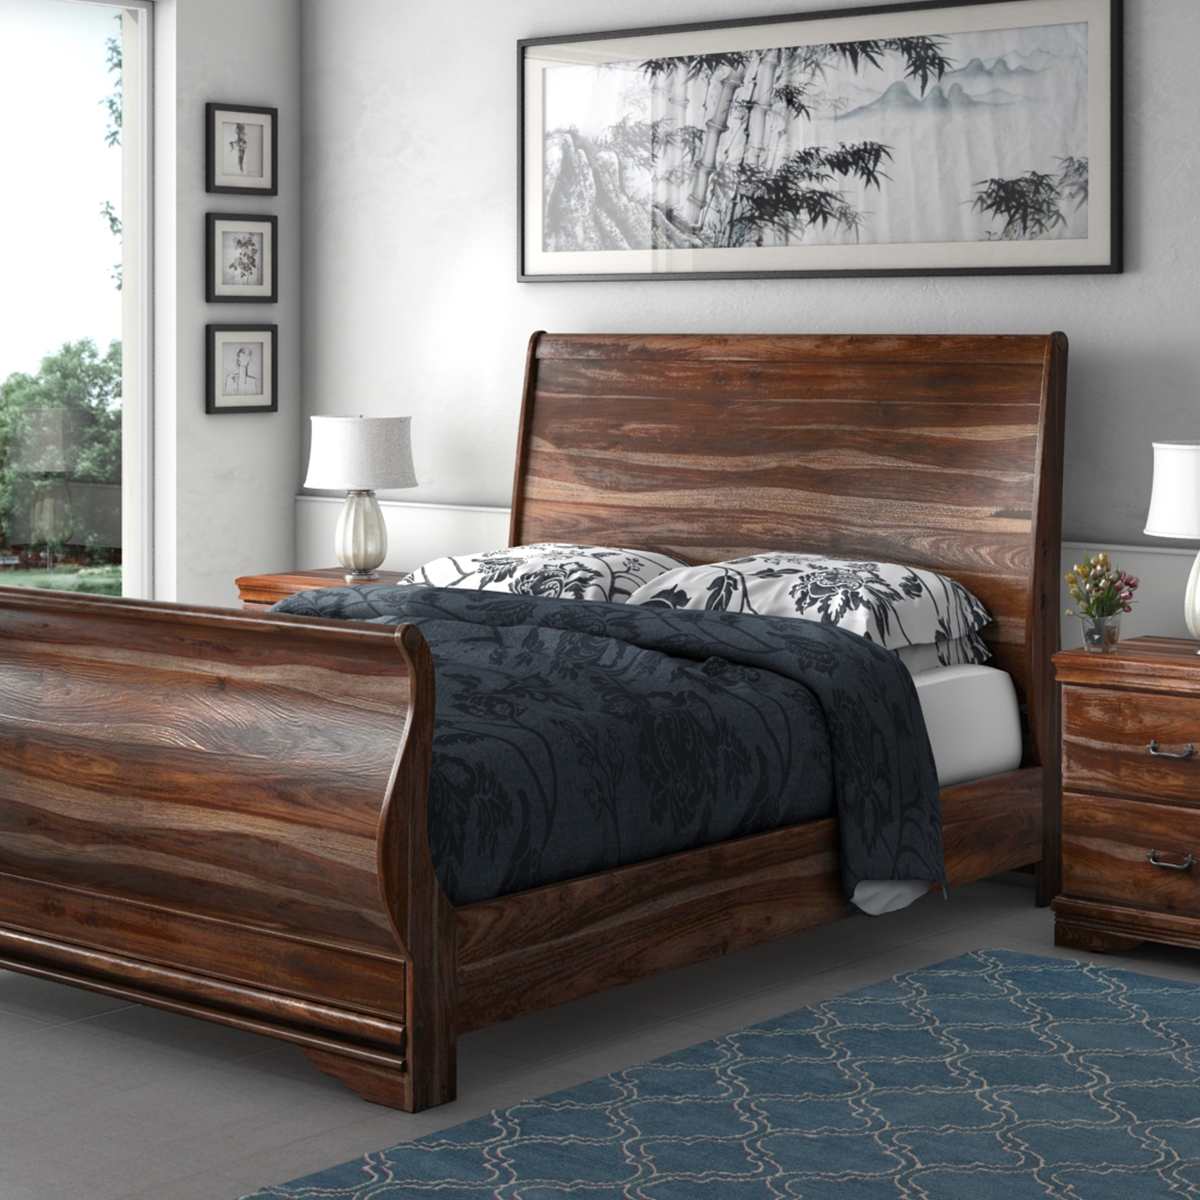 Vollholz Bett Introducing New Solid Wood Bed Collection At Sierra Living